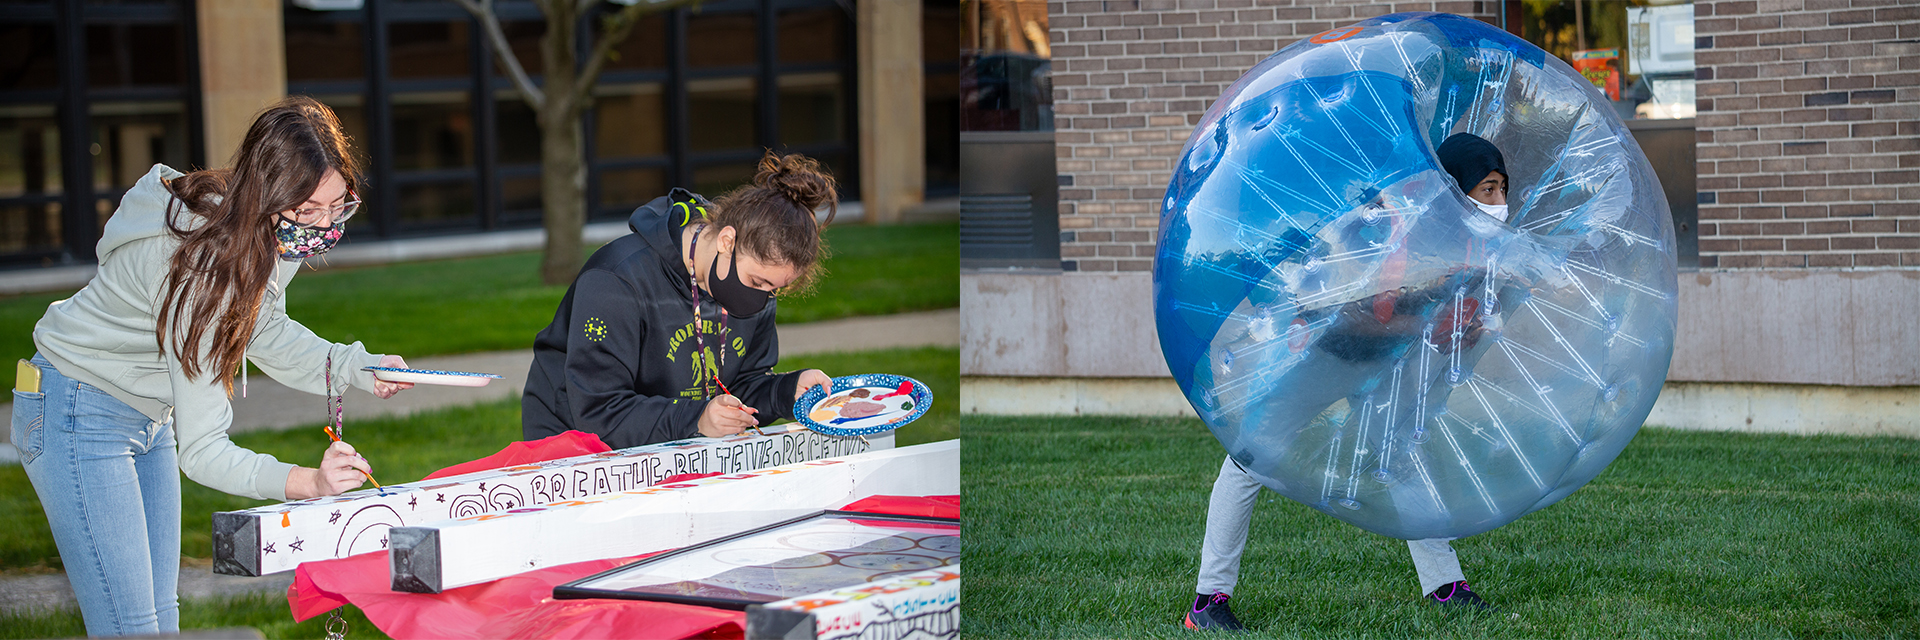 Students participating in bubble soccer and painting at Fall Festival.